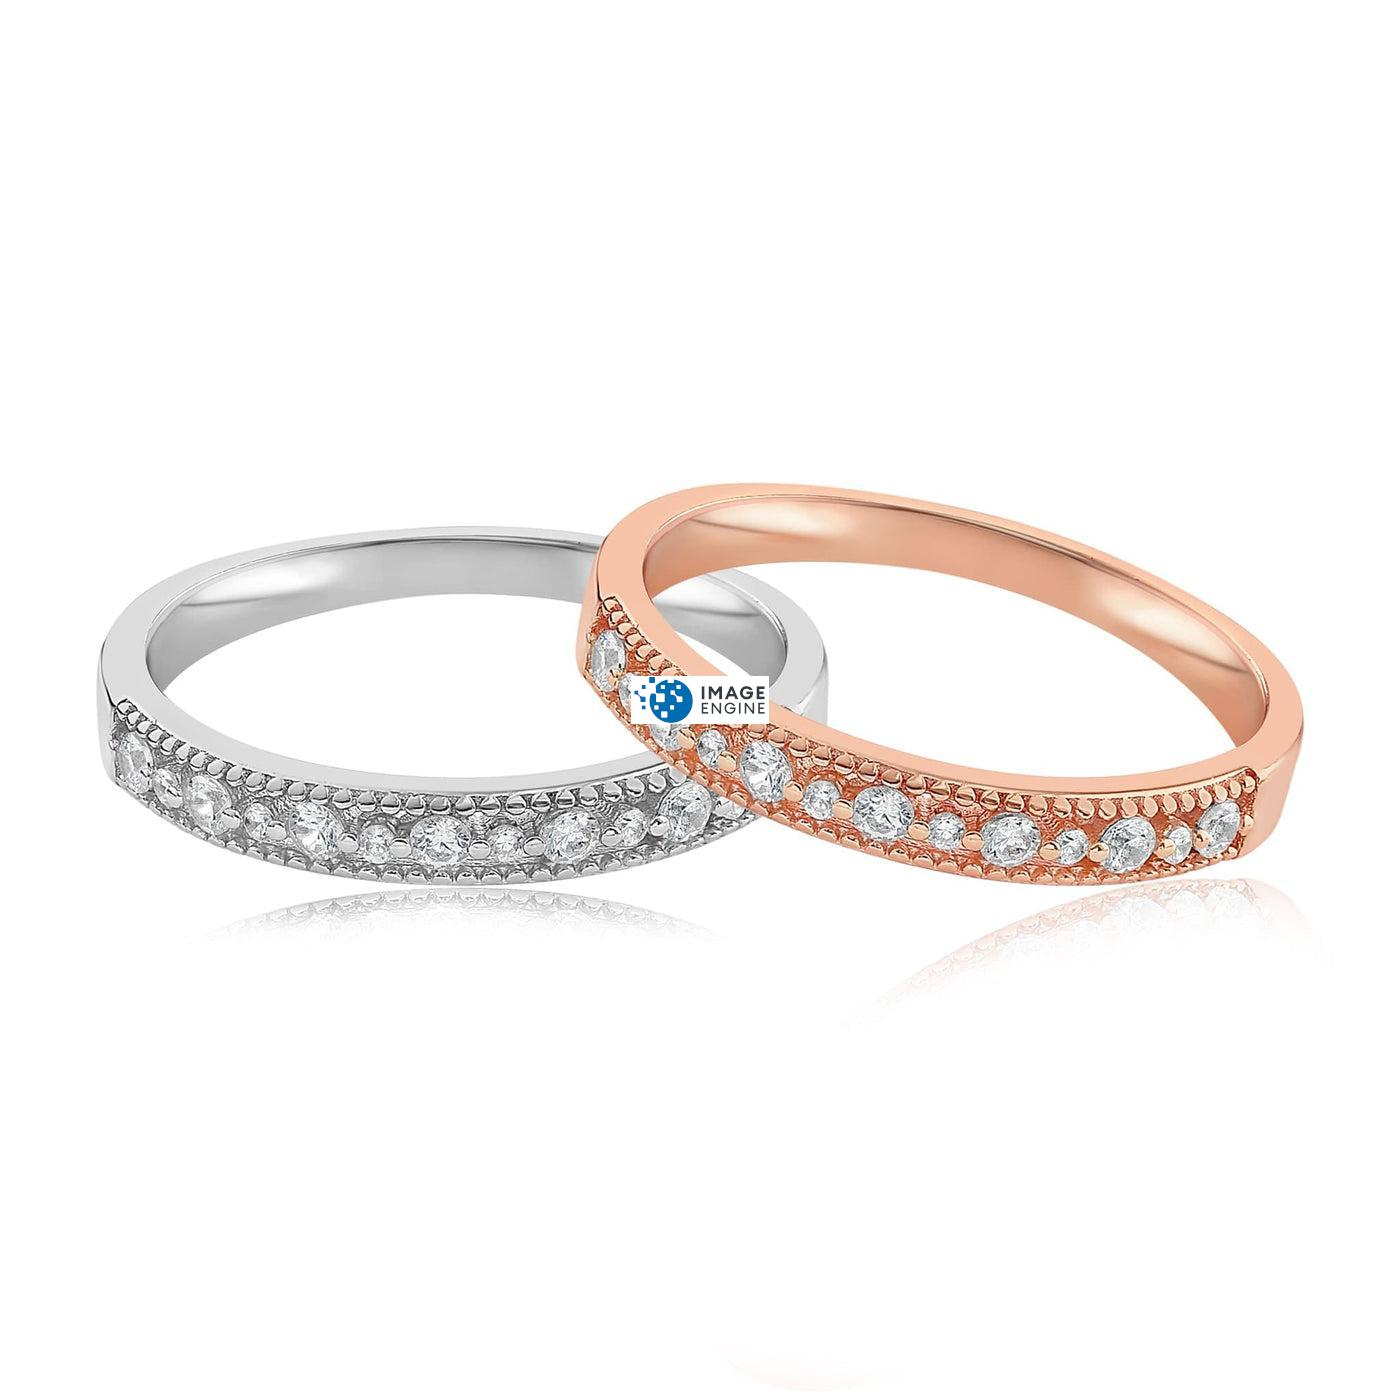 Joyce Layered Stack Ring - Front View Side by Side - 18K Rose Gold Vermeil and 925 Sterling Silver